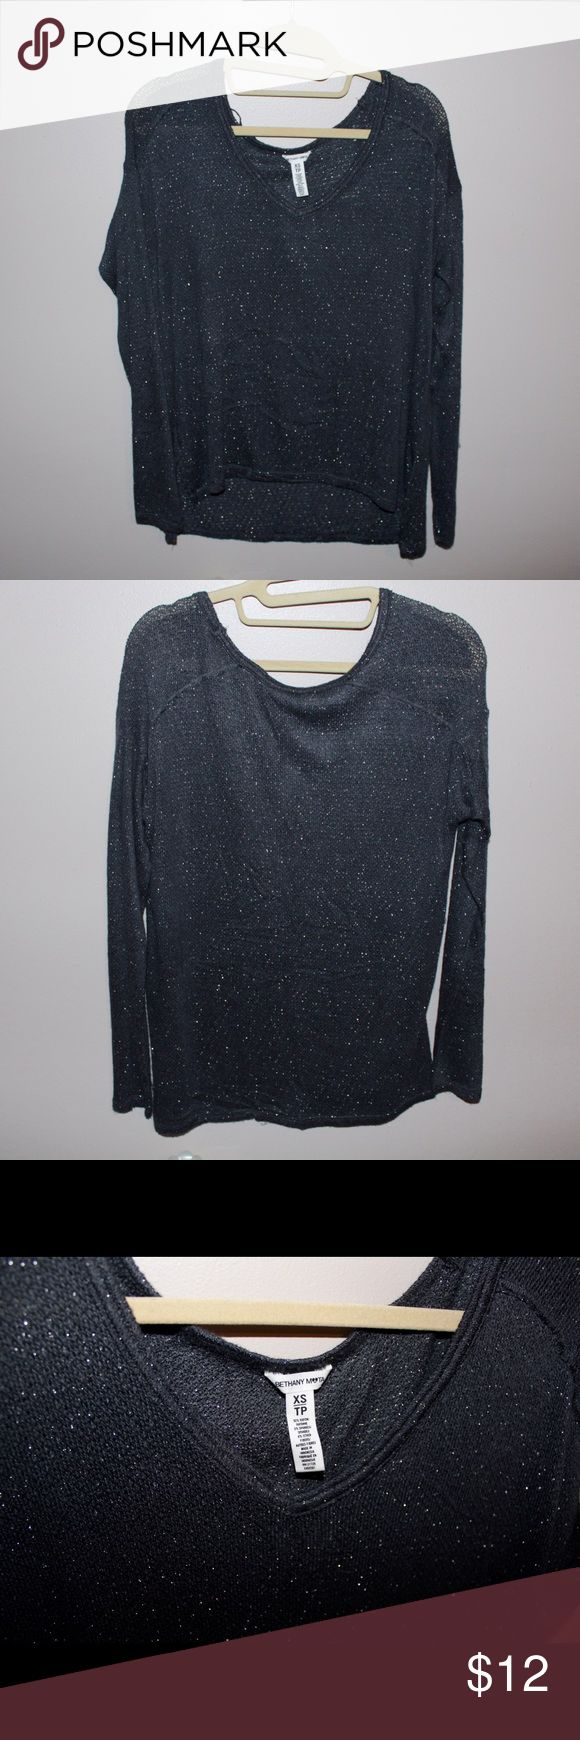 Bethany Mota Collection Gray Long Sleeve Cute Top Only worn once! I kinda gained weight lol it fit nicely as a S and M as well because of the stretch. So soft :3 glittery specks but not too big. First picture from online just so I can show what it looks like on !! Aeropostale Tops Tees - Long Sleeve